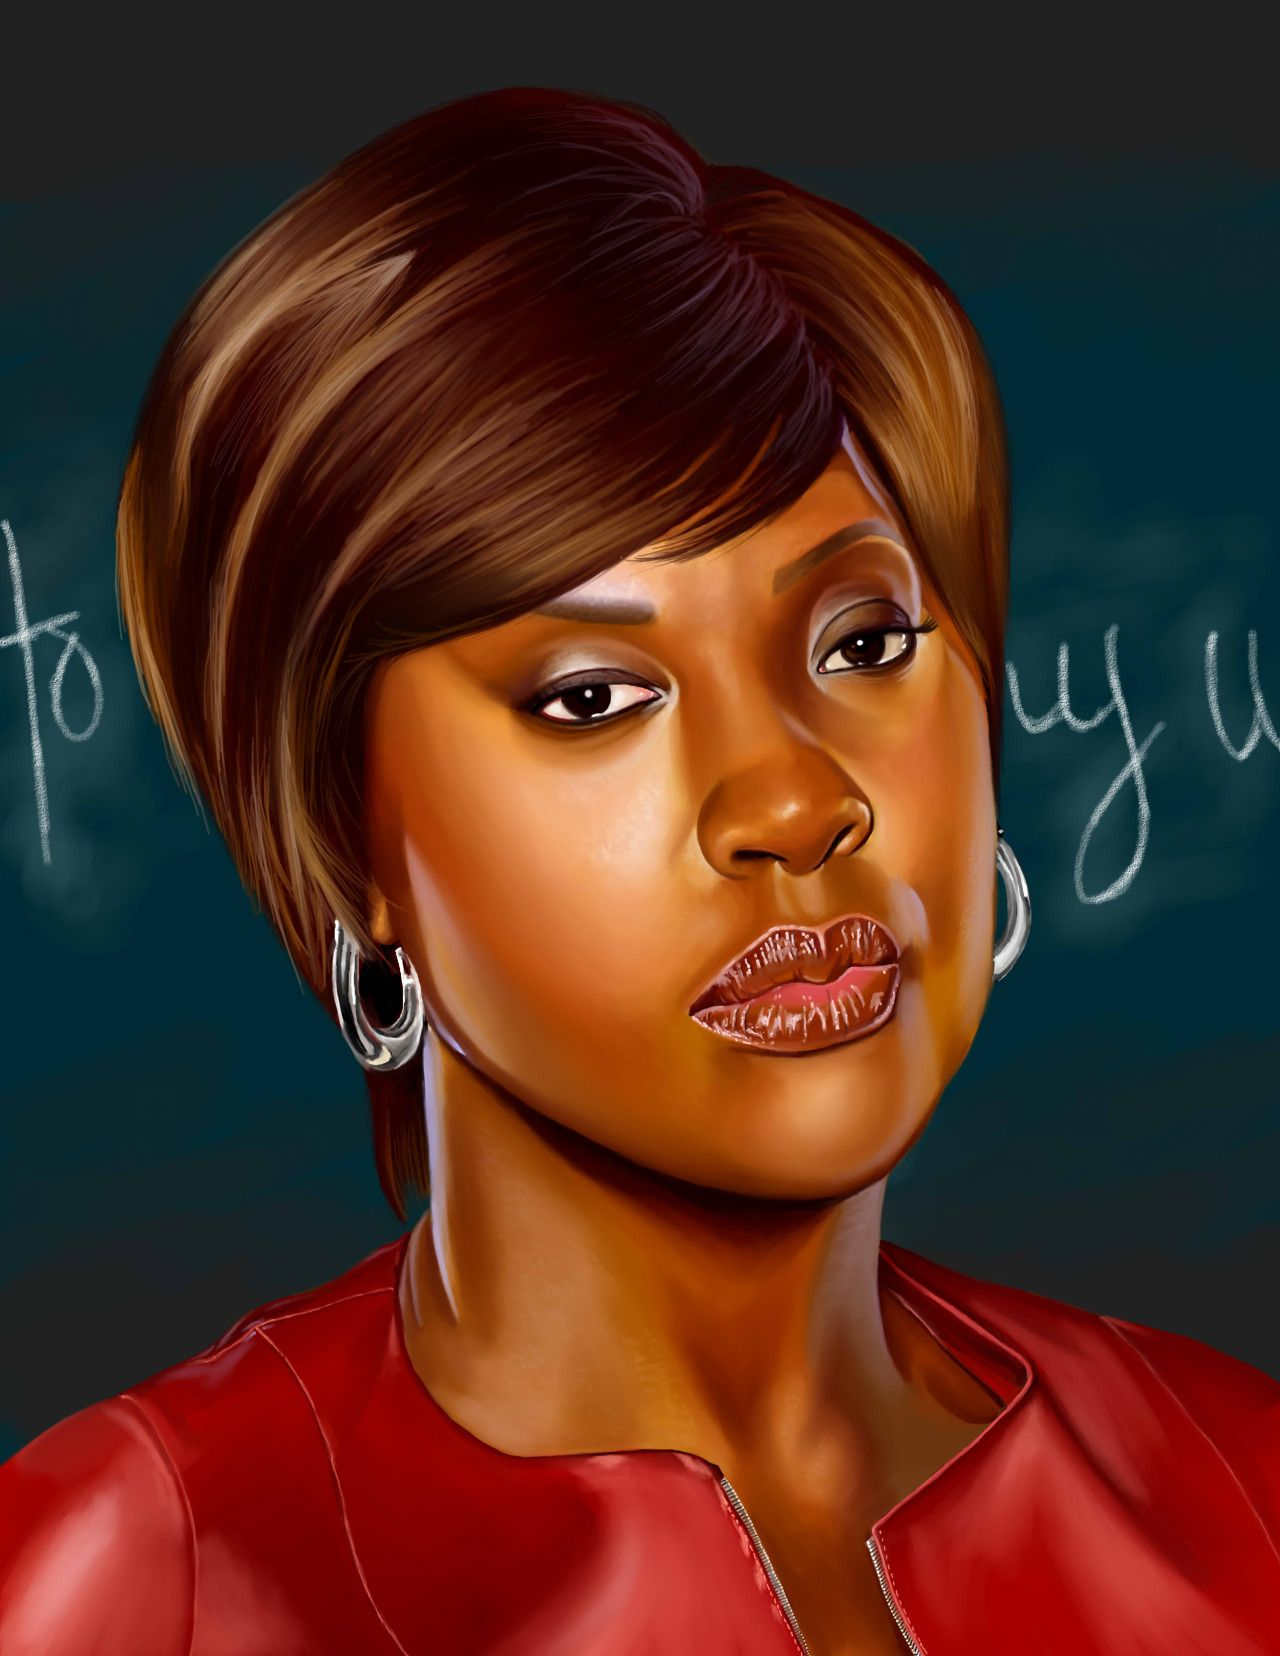 Viola Davis as Annalise Keating from How To Get Away With Murder